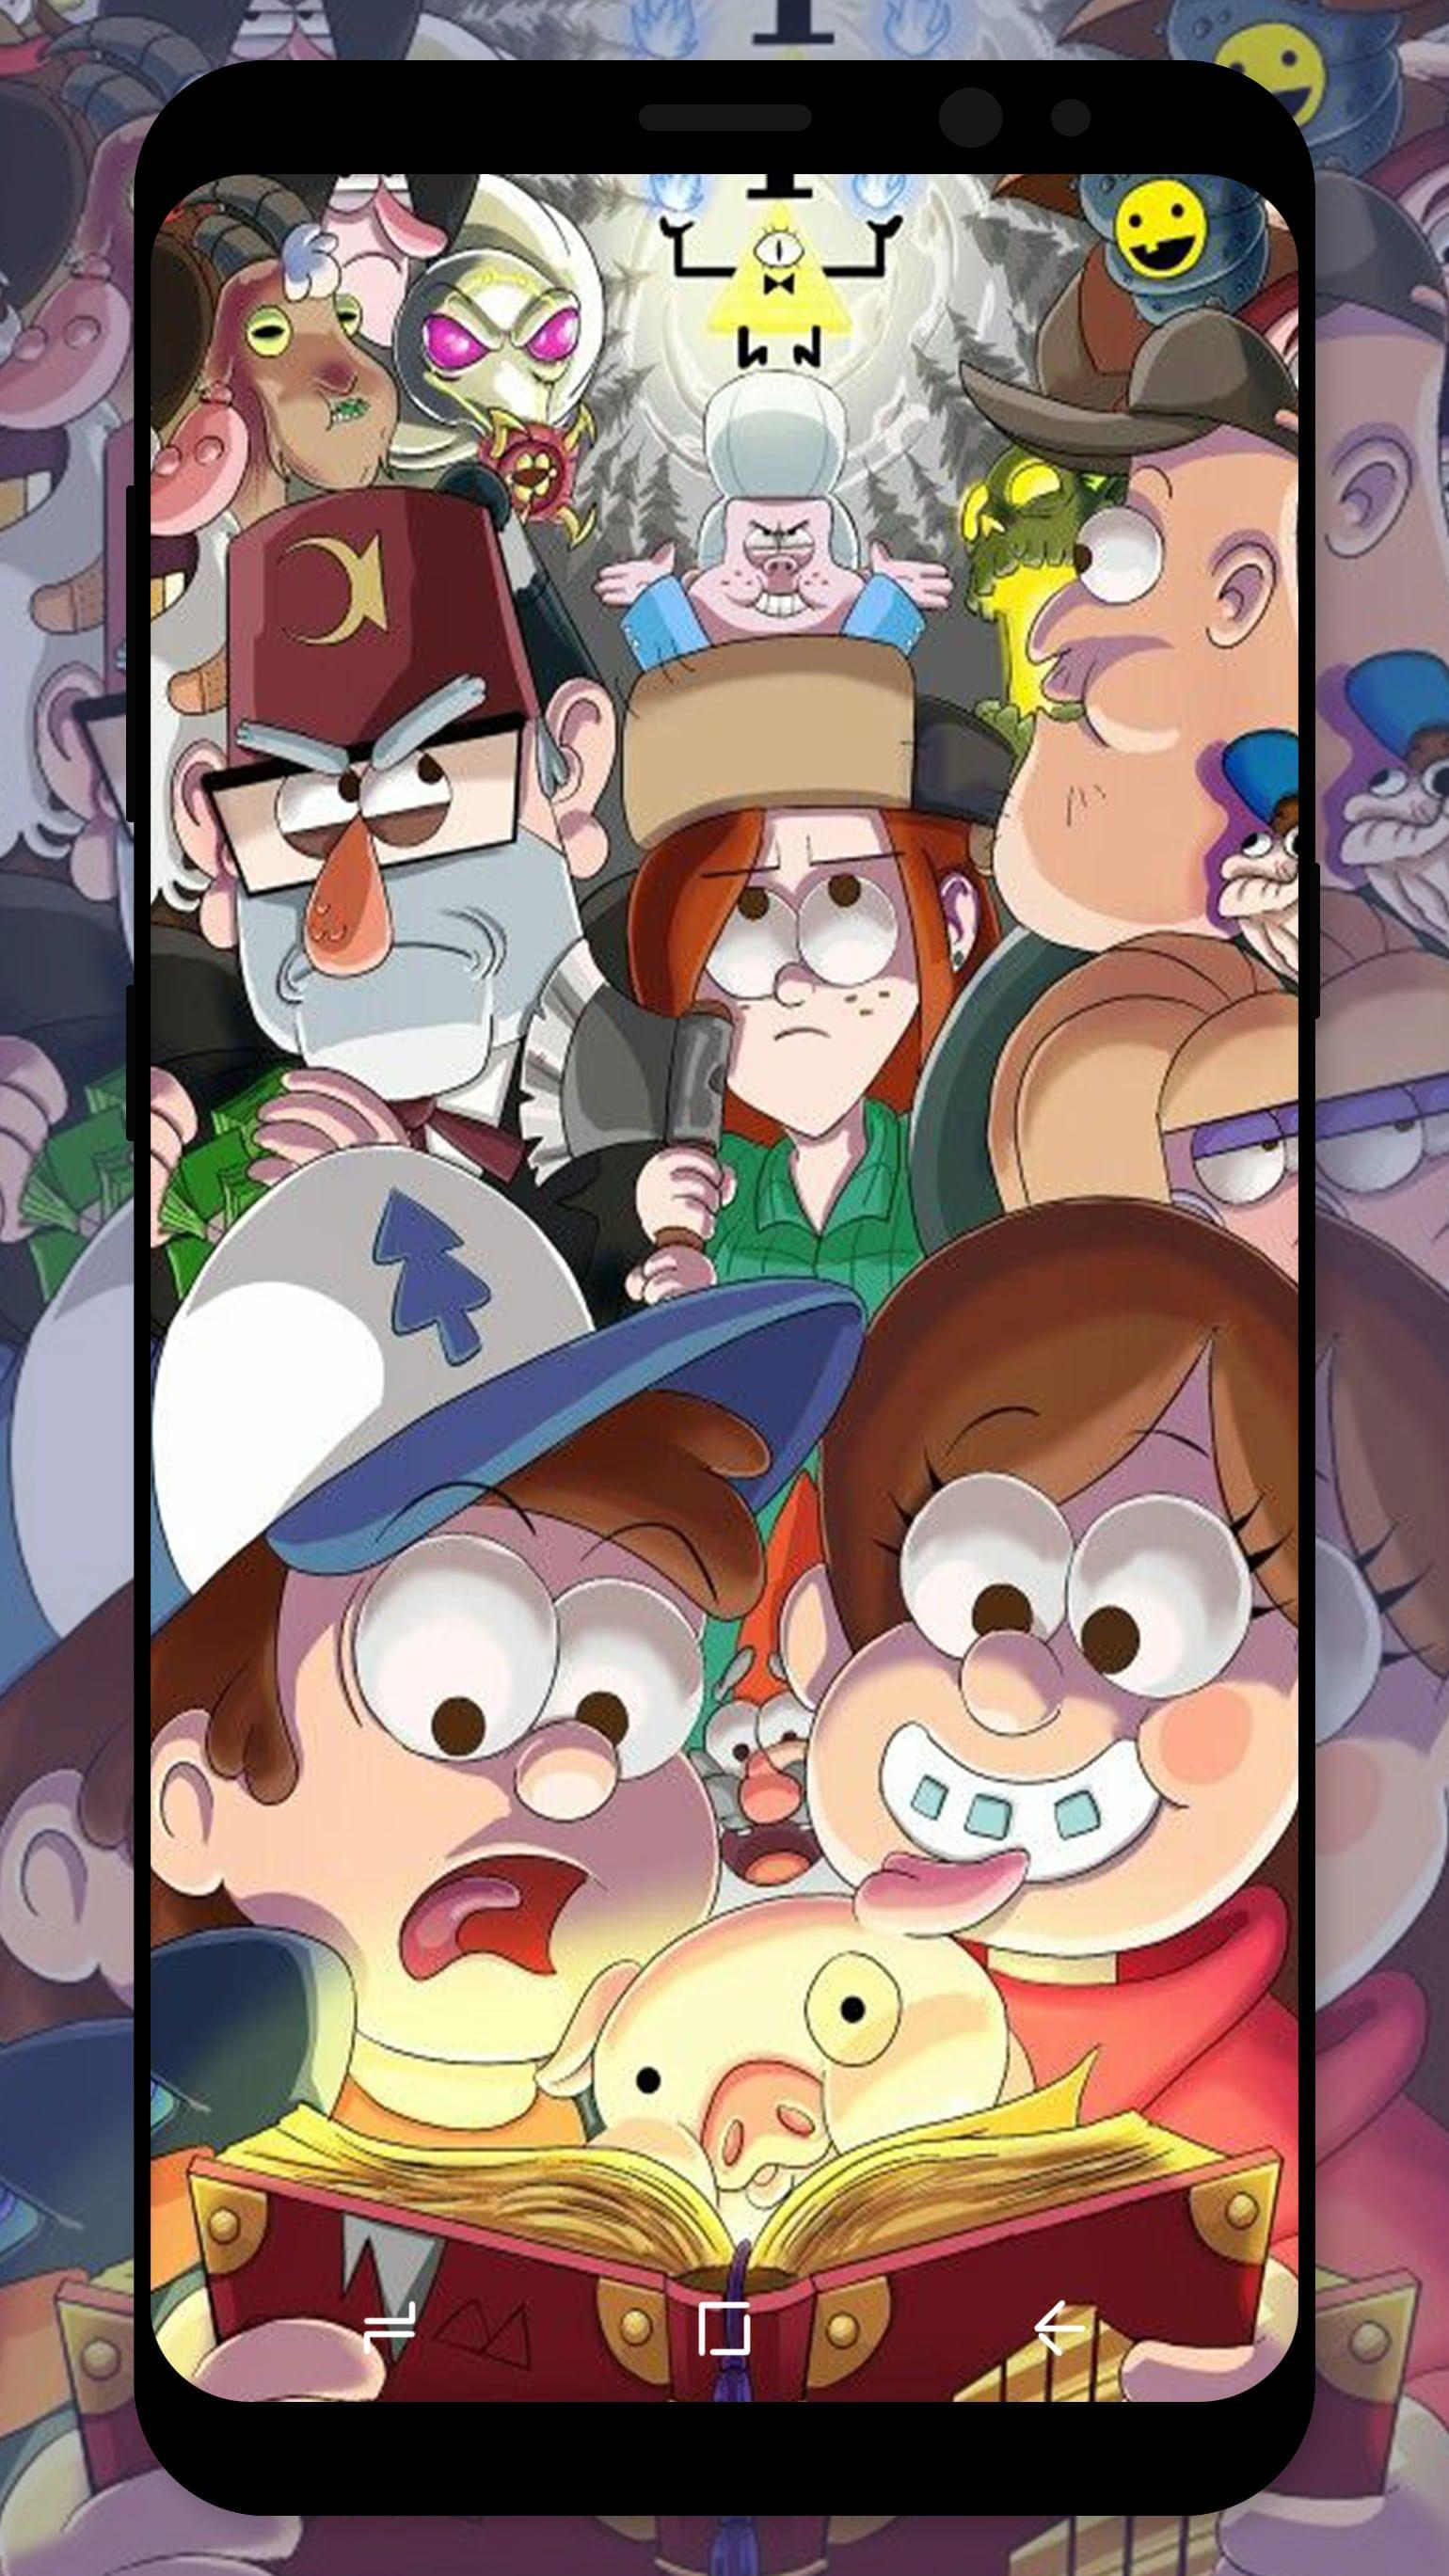 Gravity Falls Hd Wallpaper 2018 For Android Apk Download